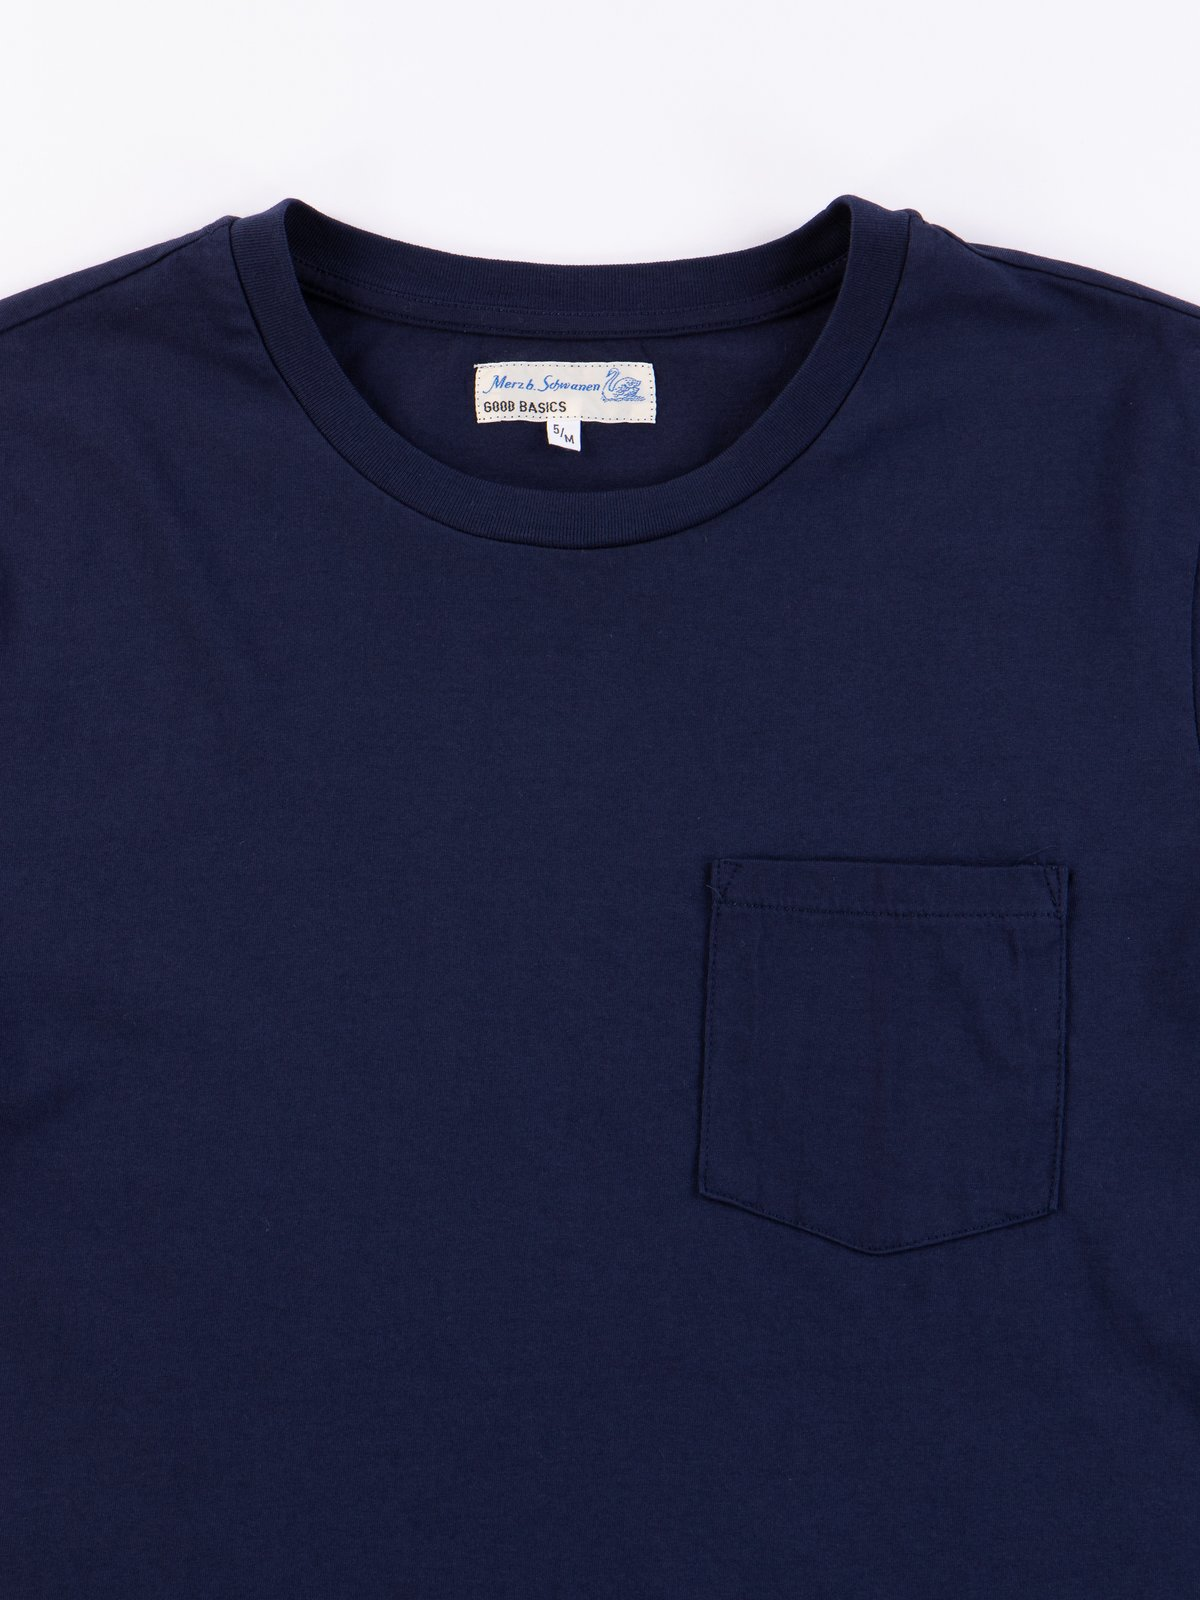 Deep Blue Good Basics CTP01 Pocket Crew Neck Tee - Image 2